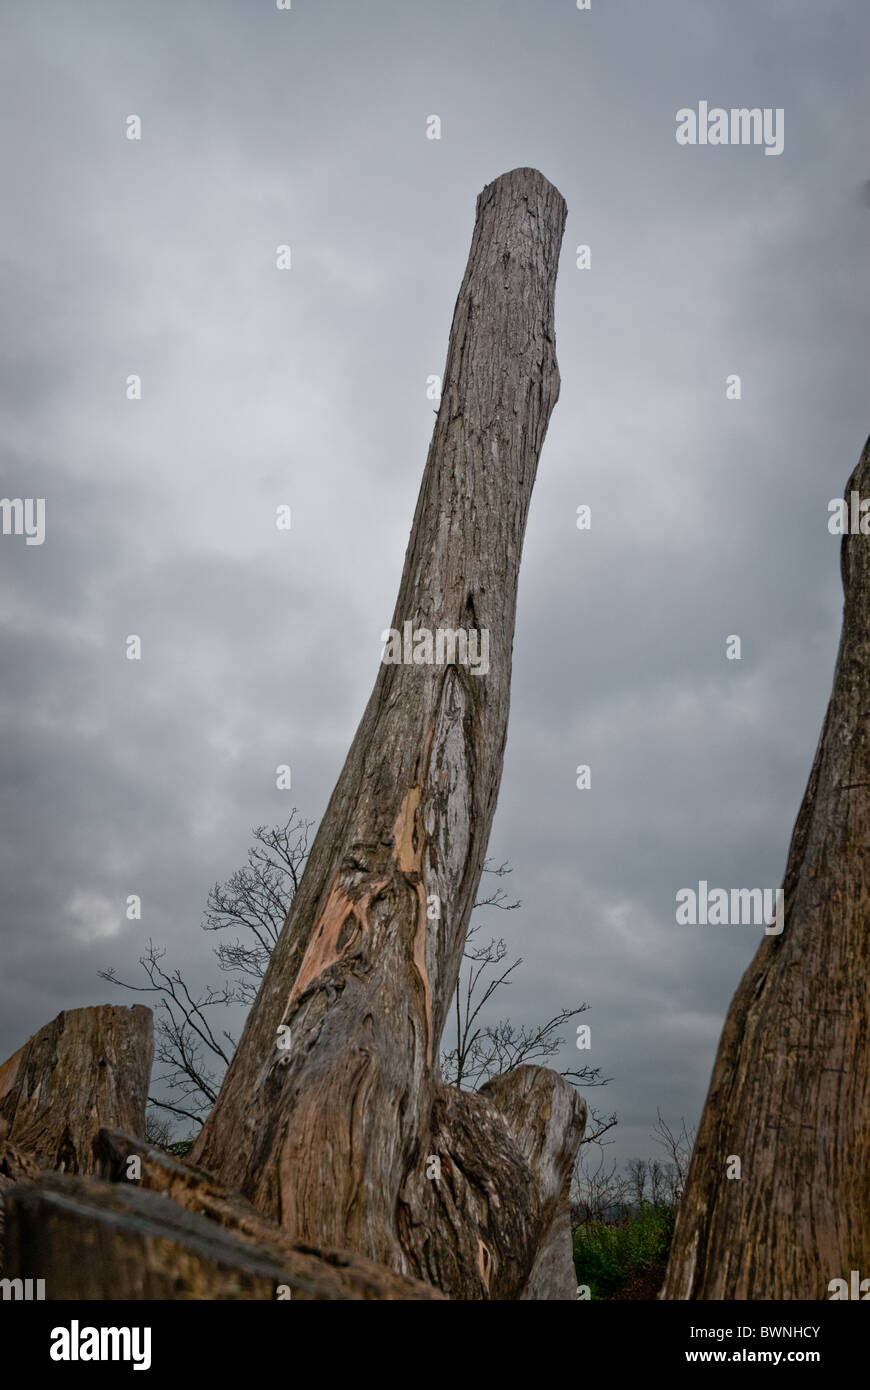 Barren tree against a gray sky - Stock Image